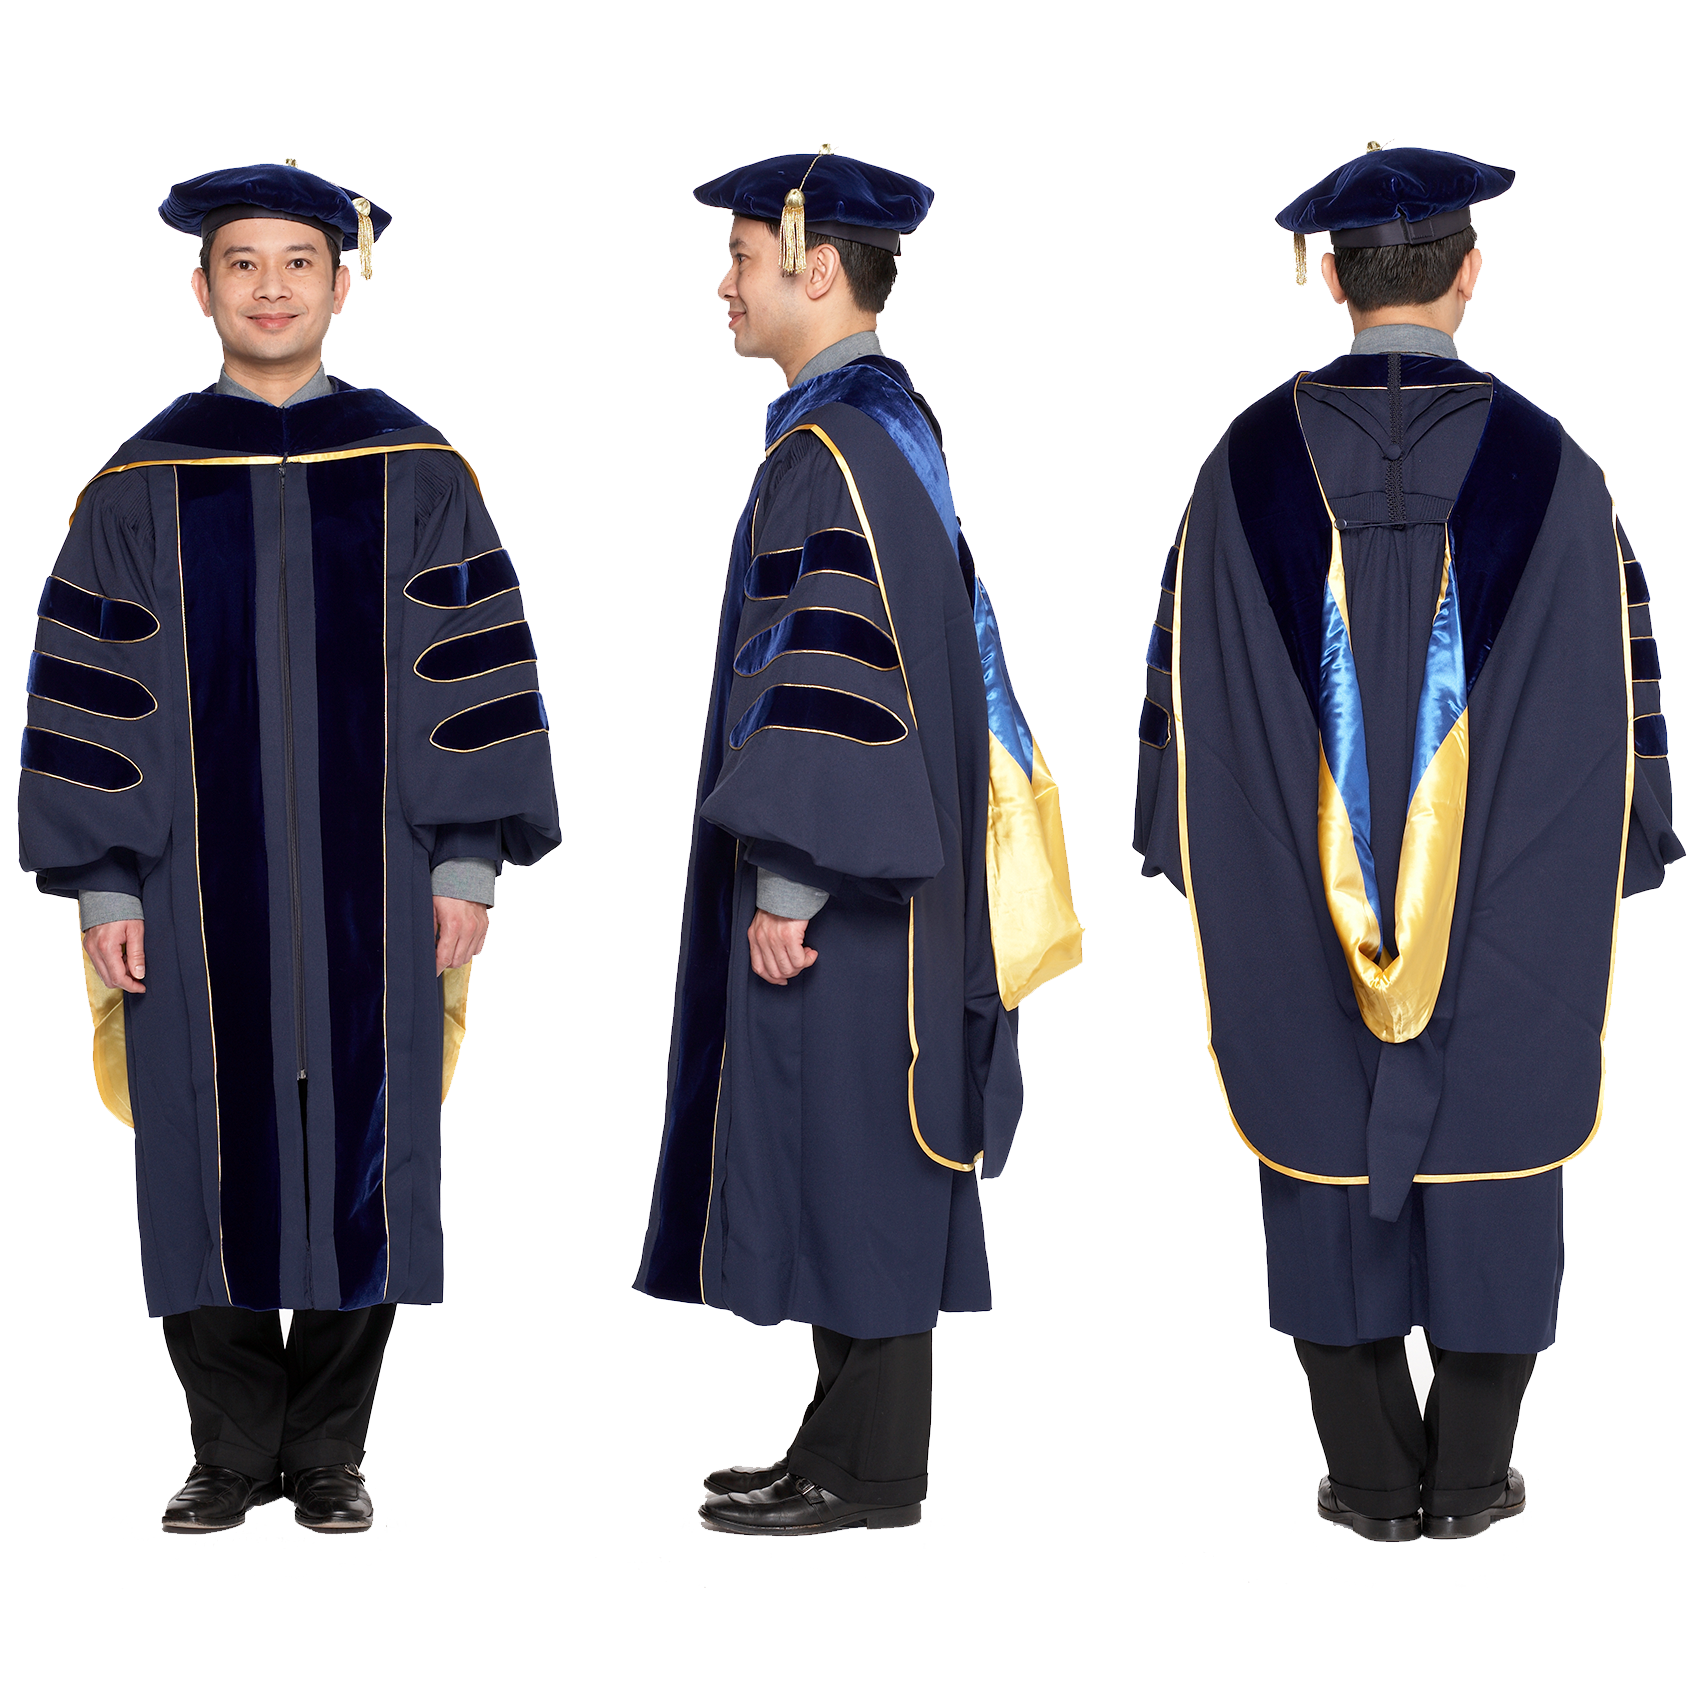 uc berkeley phd . dissertations